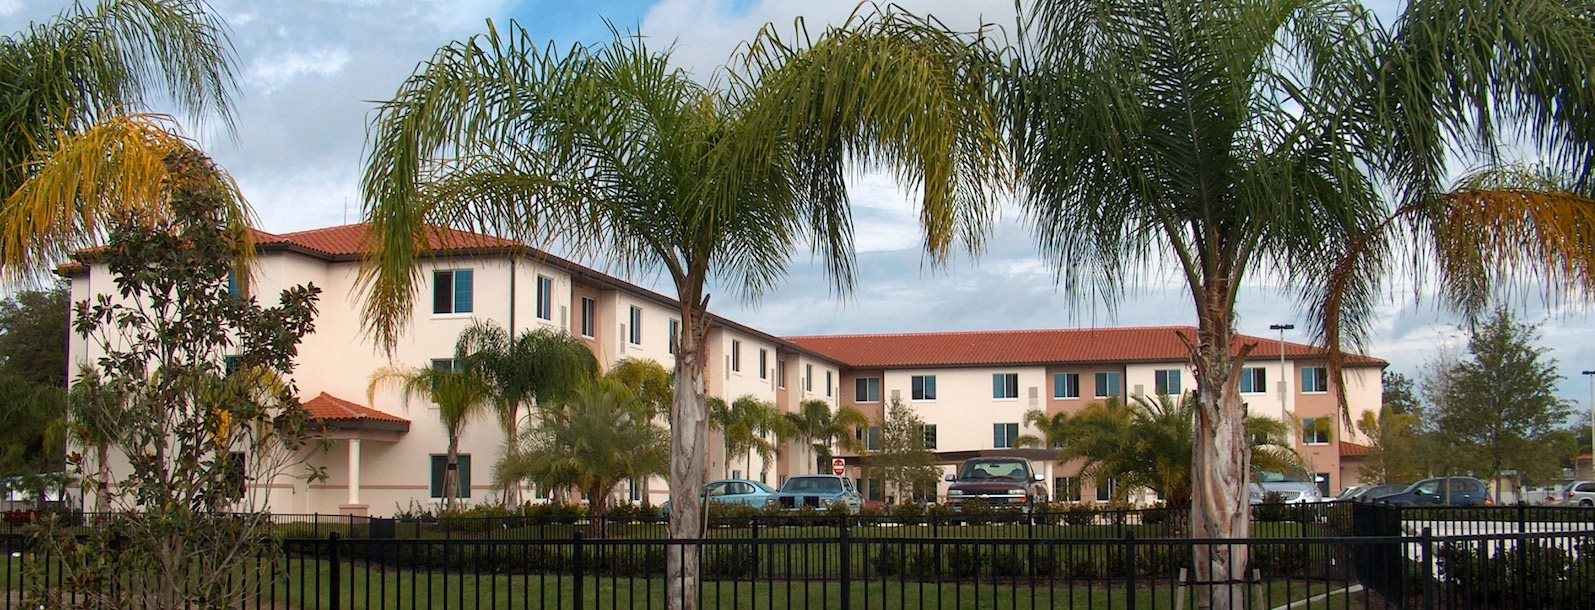 Holy Cross Manor I and II senior apartments in Palmetto, FL exterior